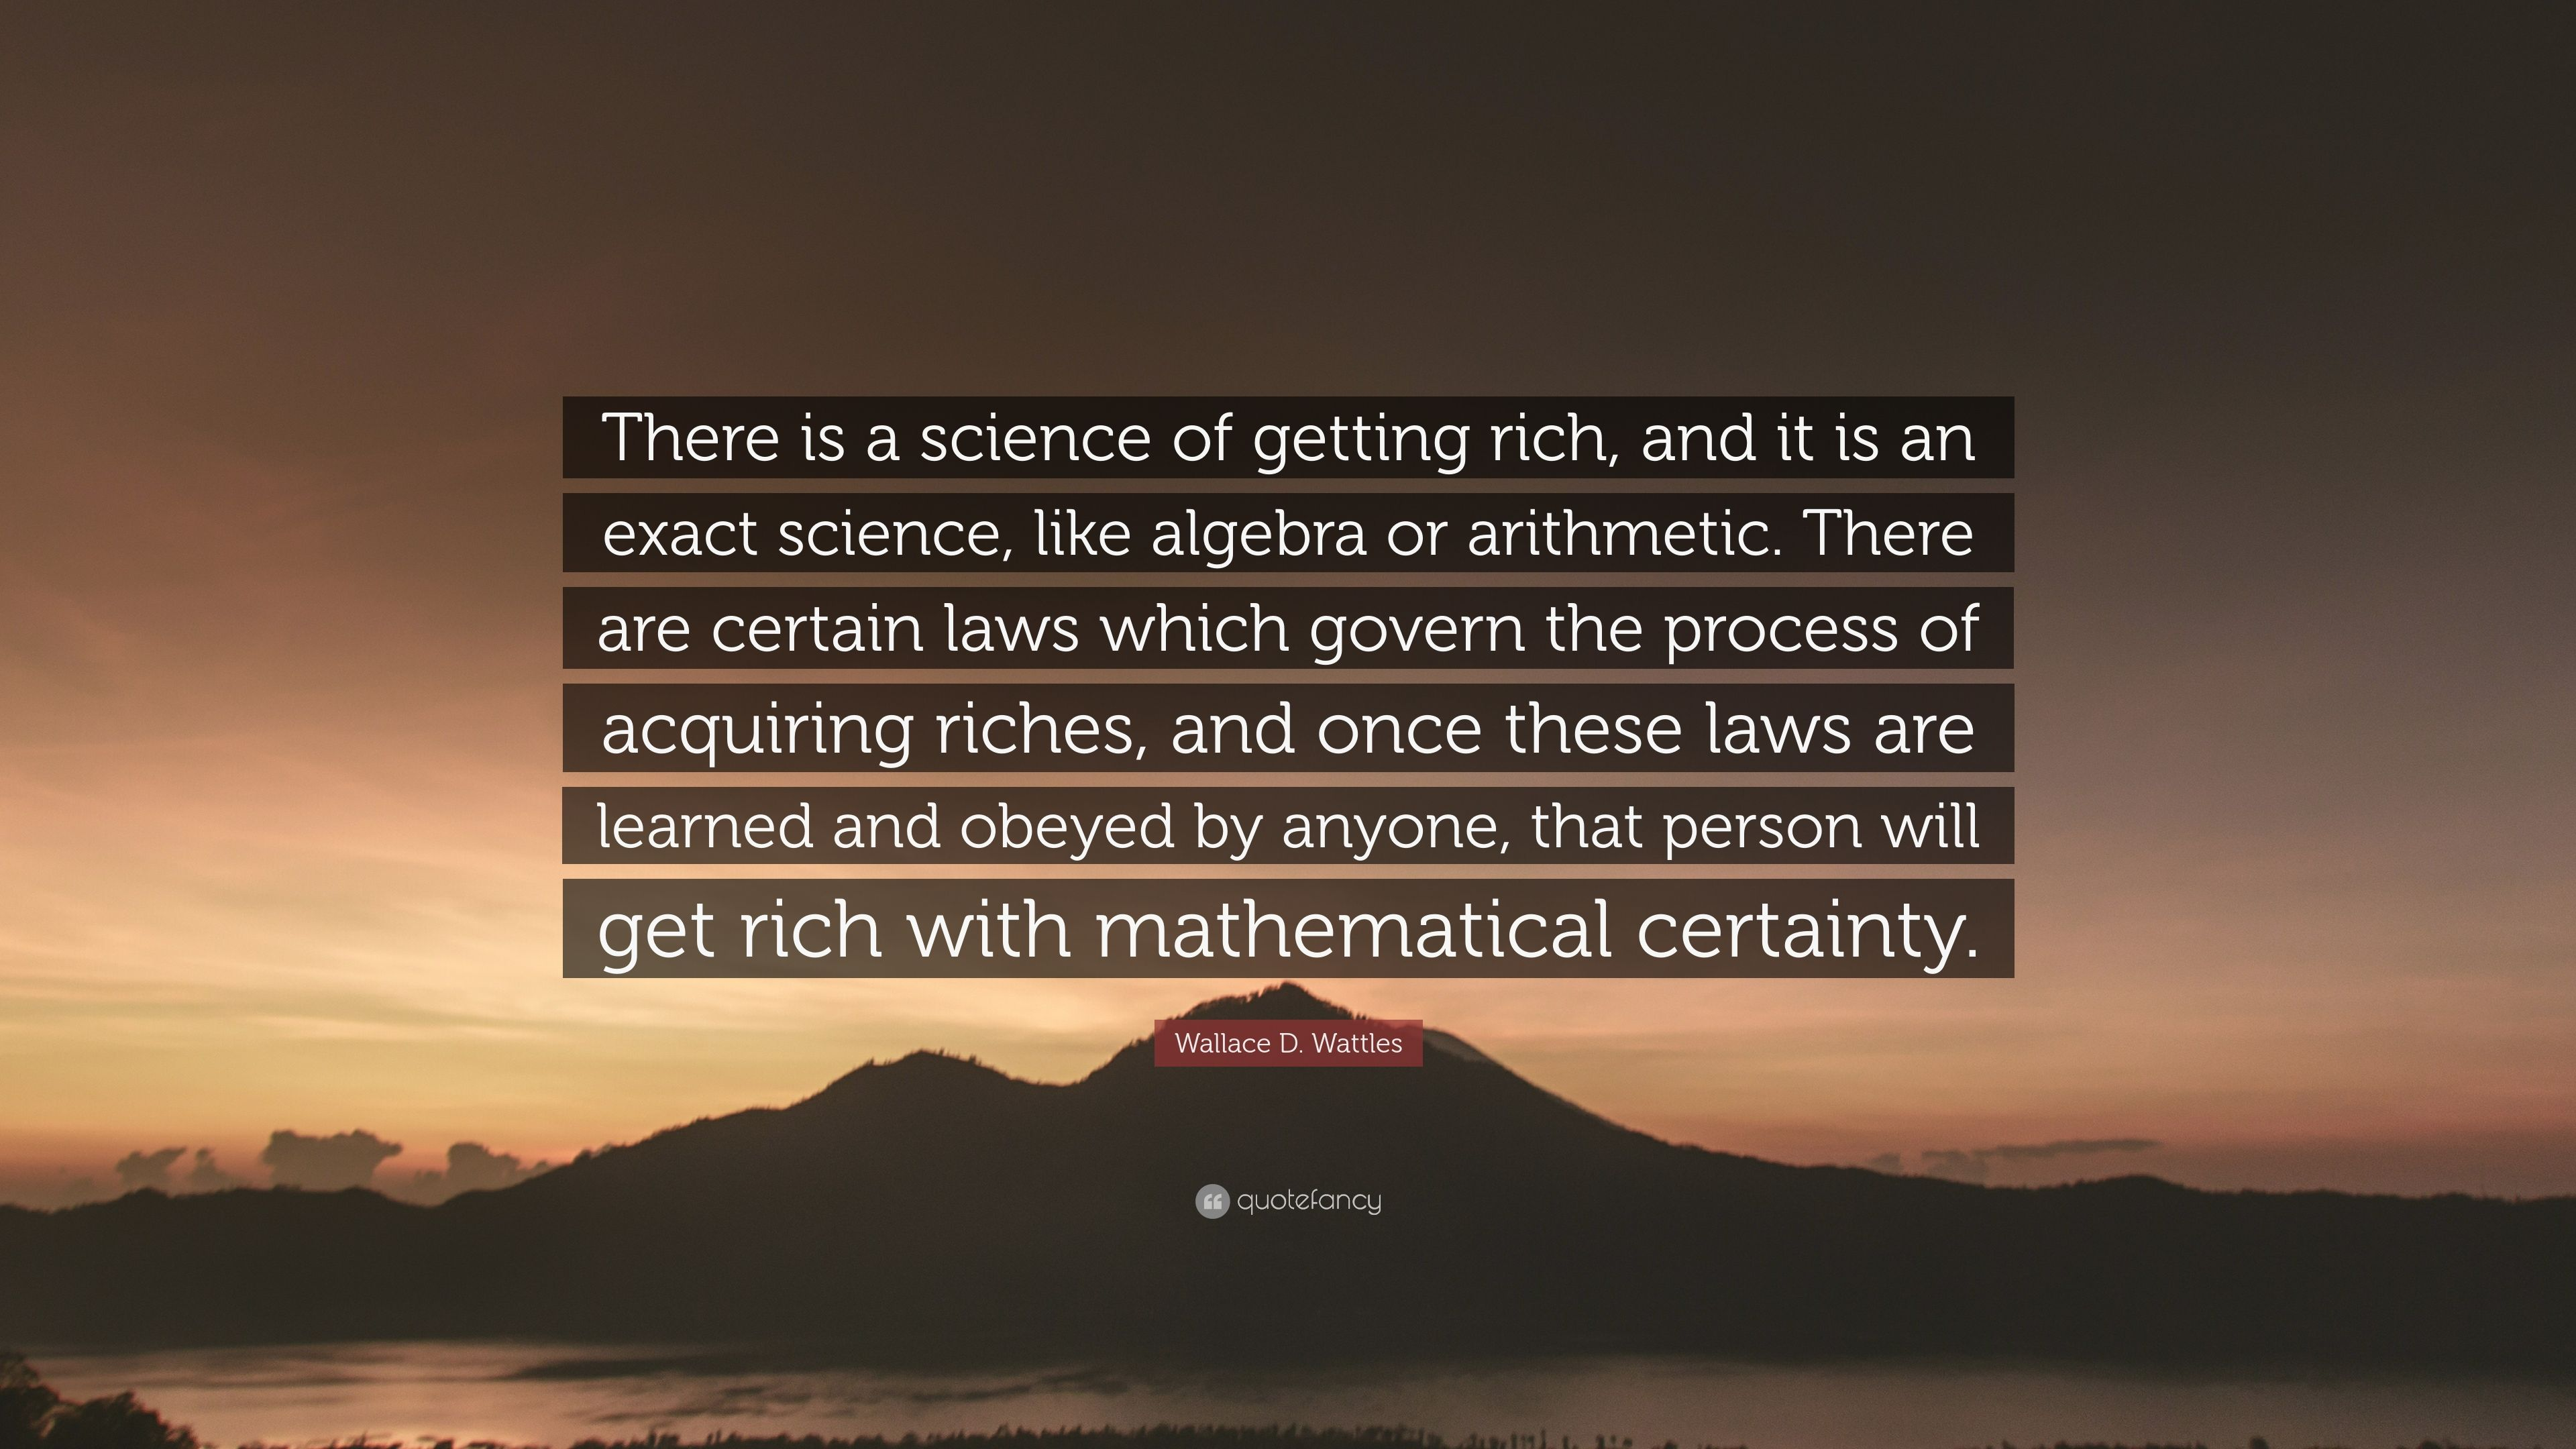 Wallace D Wattles Quote There Is A Science Of Getting Rich And